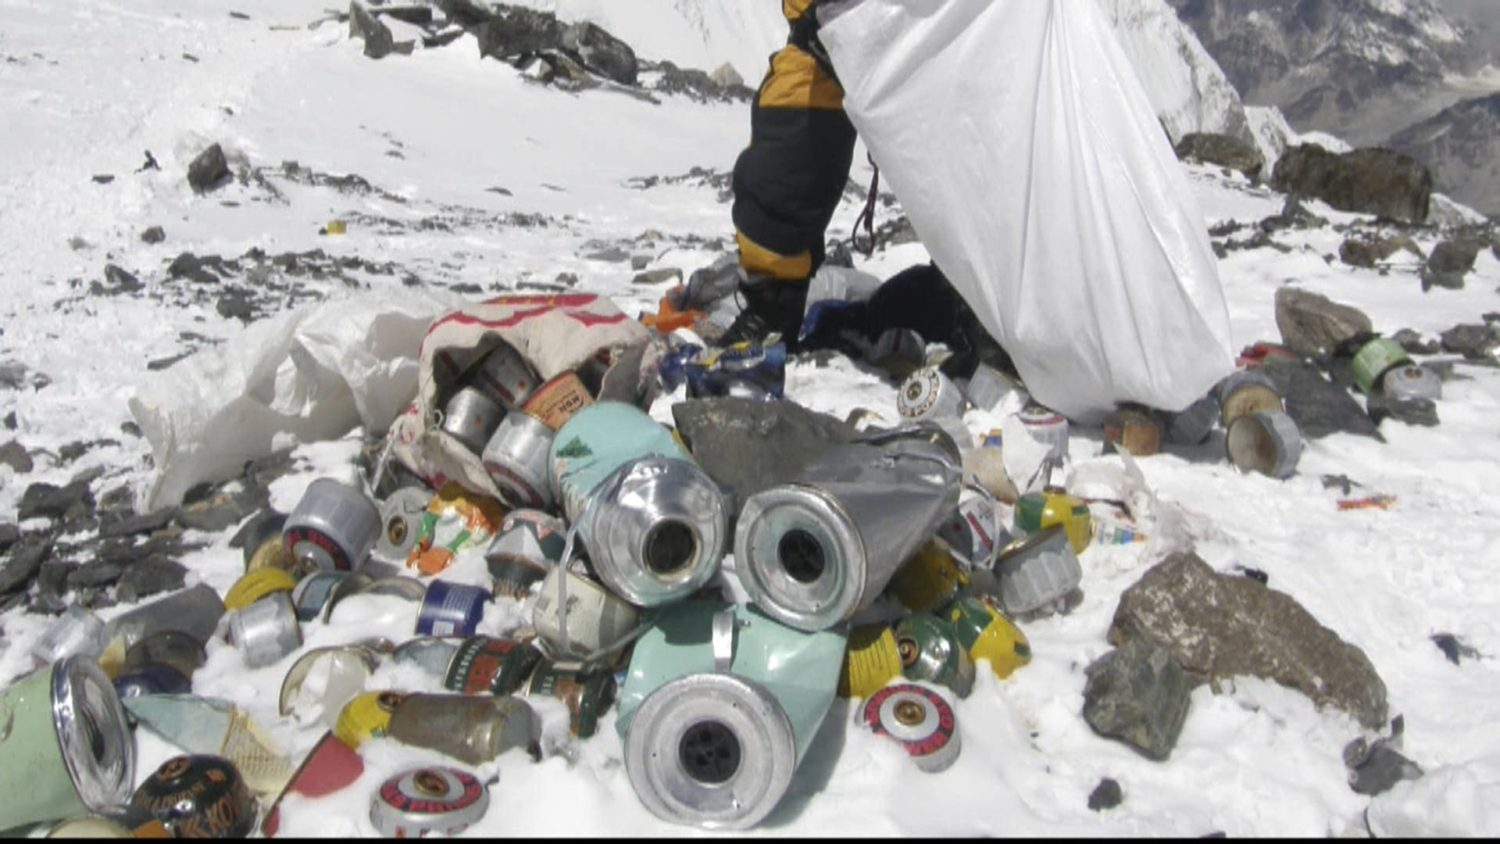 Everest, highest, mountain, himalayas, trash, rubbish, garbage, climbers